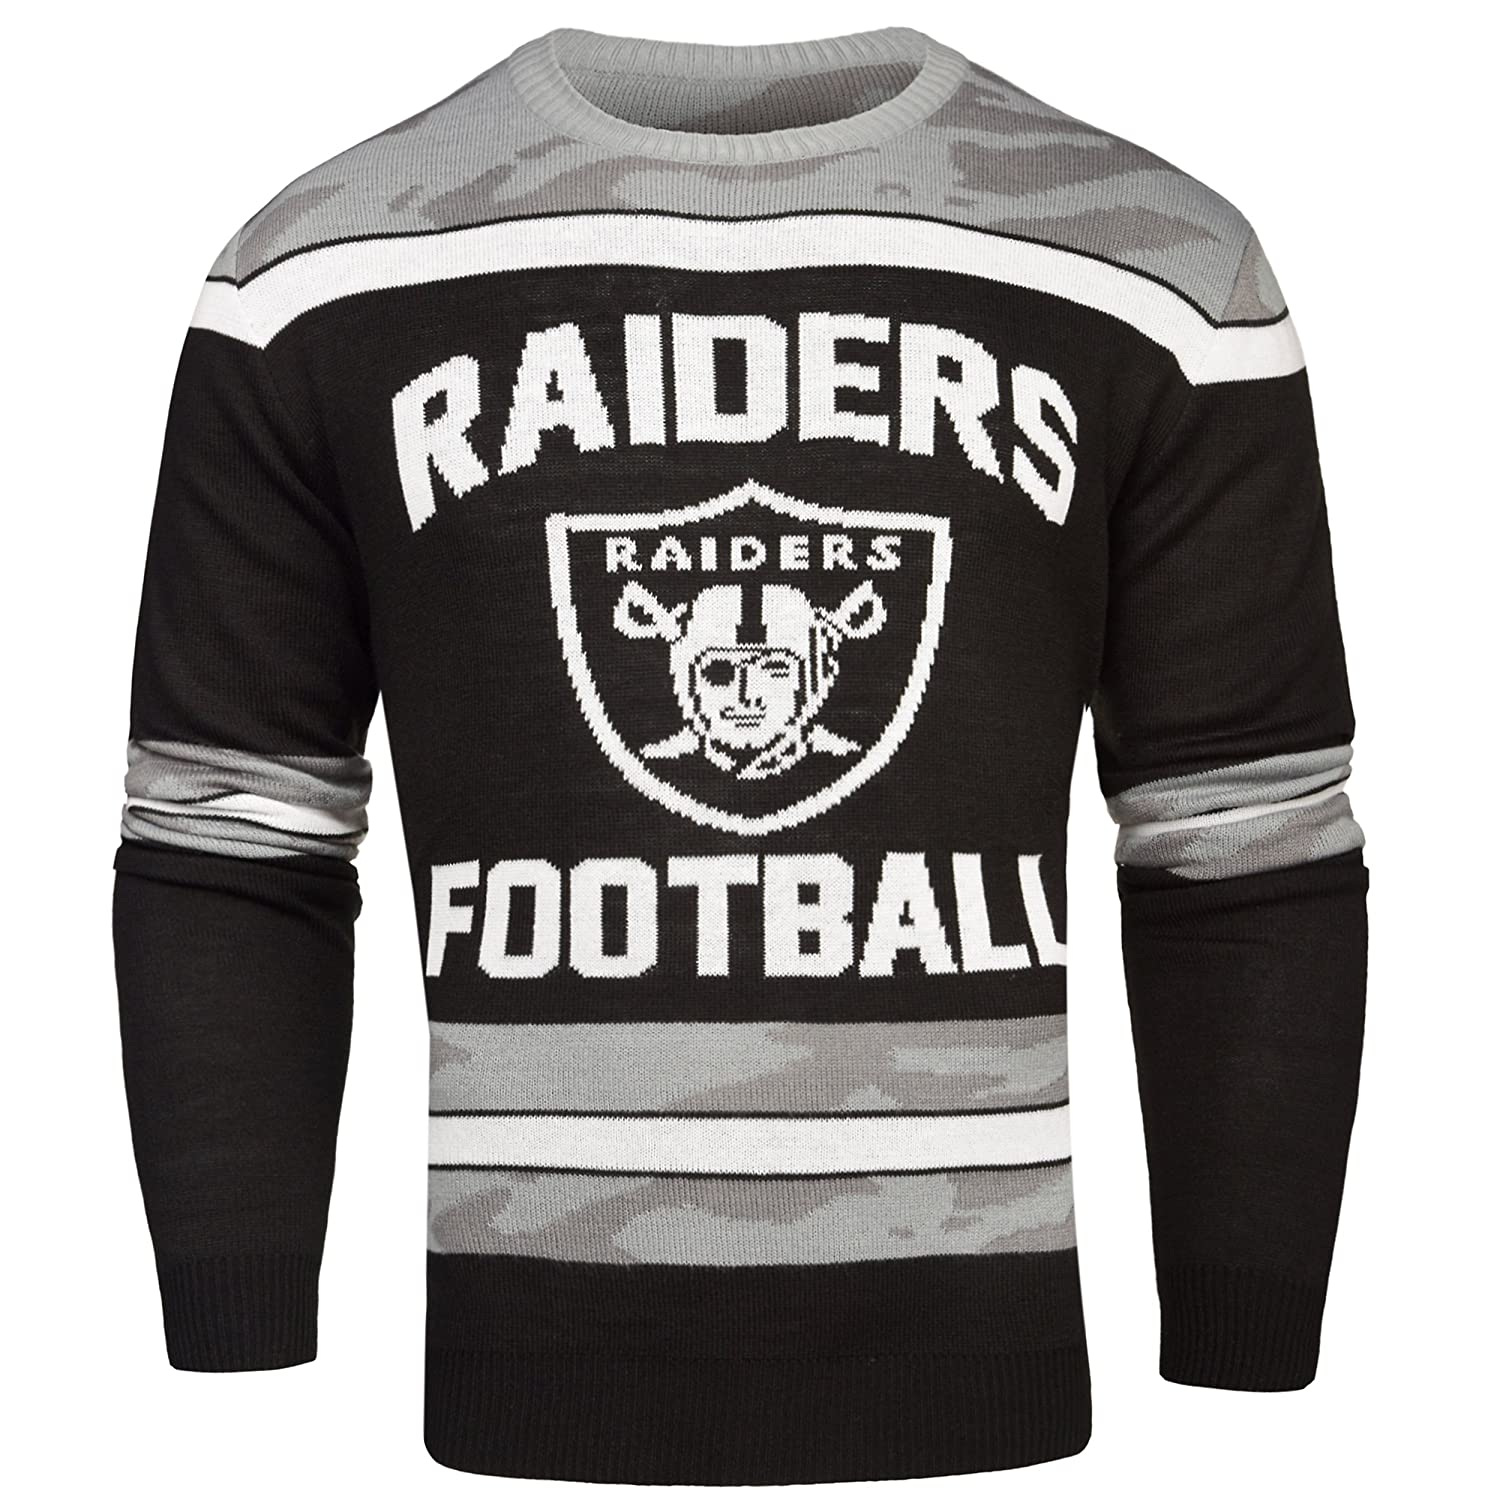 Amazon.com : Oakland Raiders Ugly Glow In The Dark Sweater - Mens ...